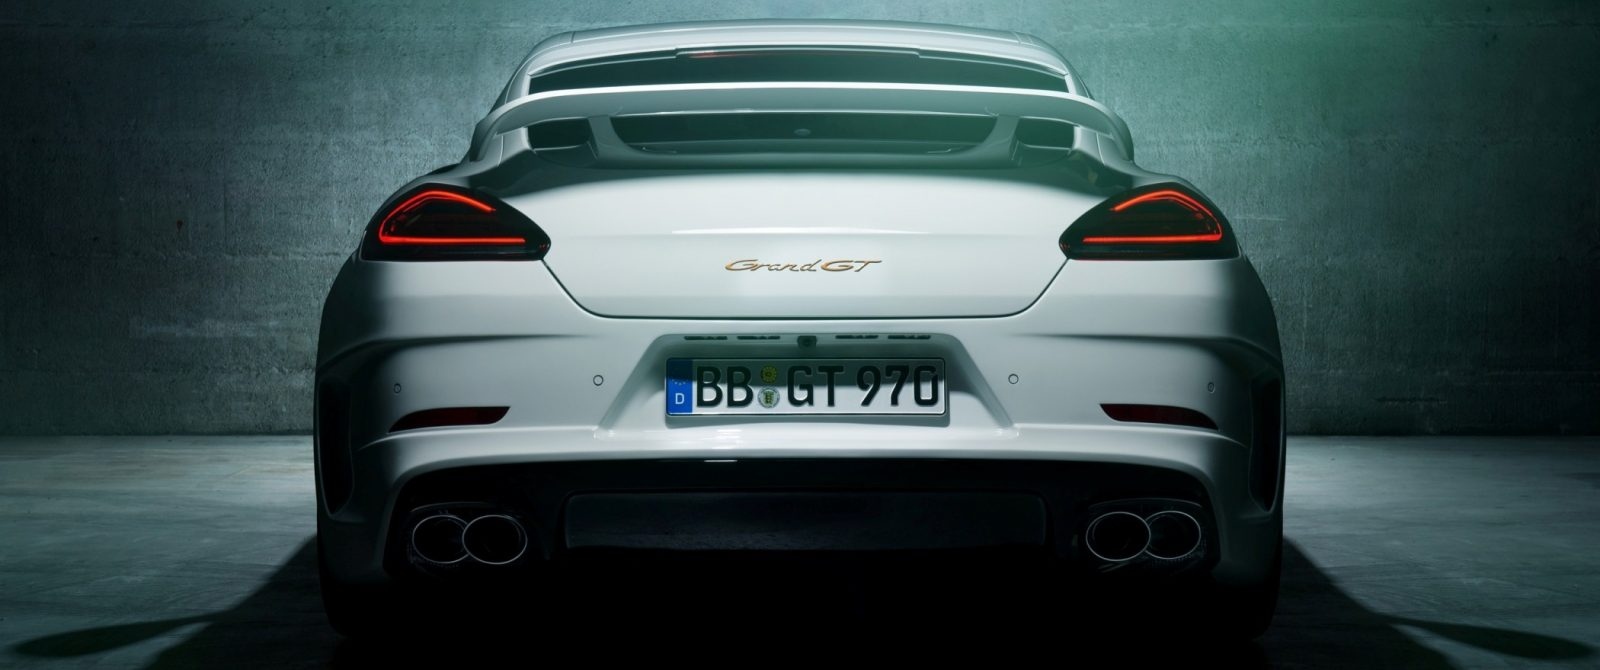 TECHART_GrandGT_for_Porsche_Panamera_Turbo_exterior7